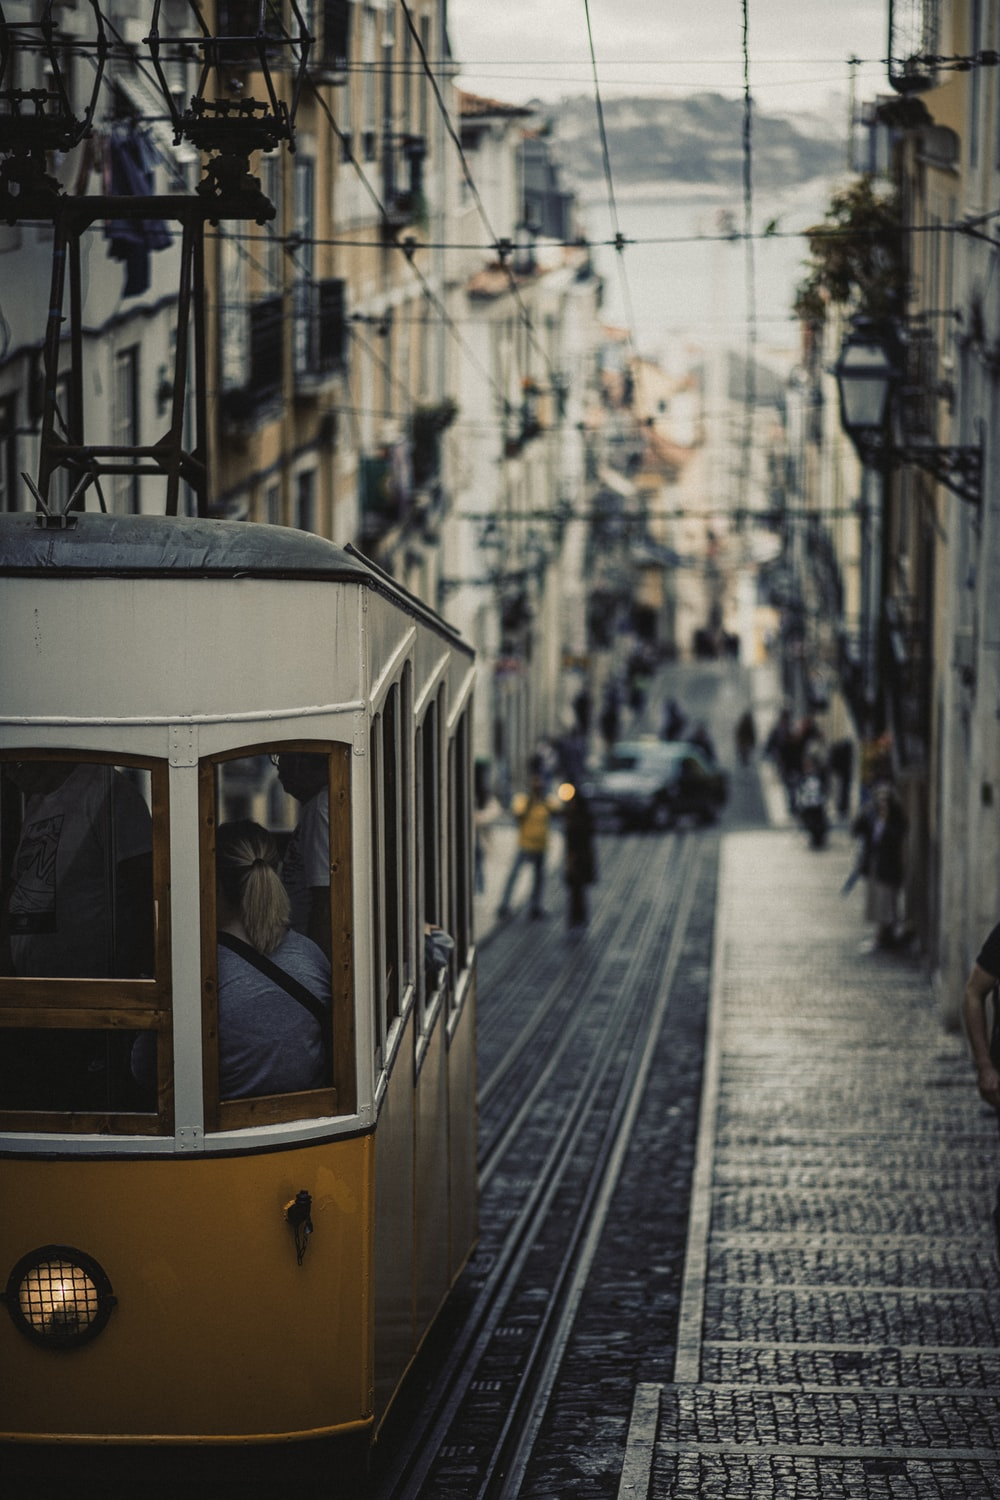 yellow and white tram on street during daytime